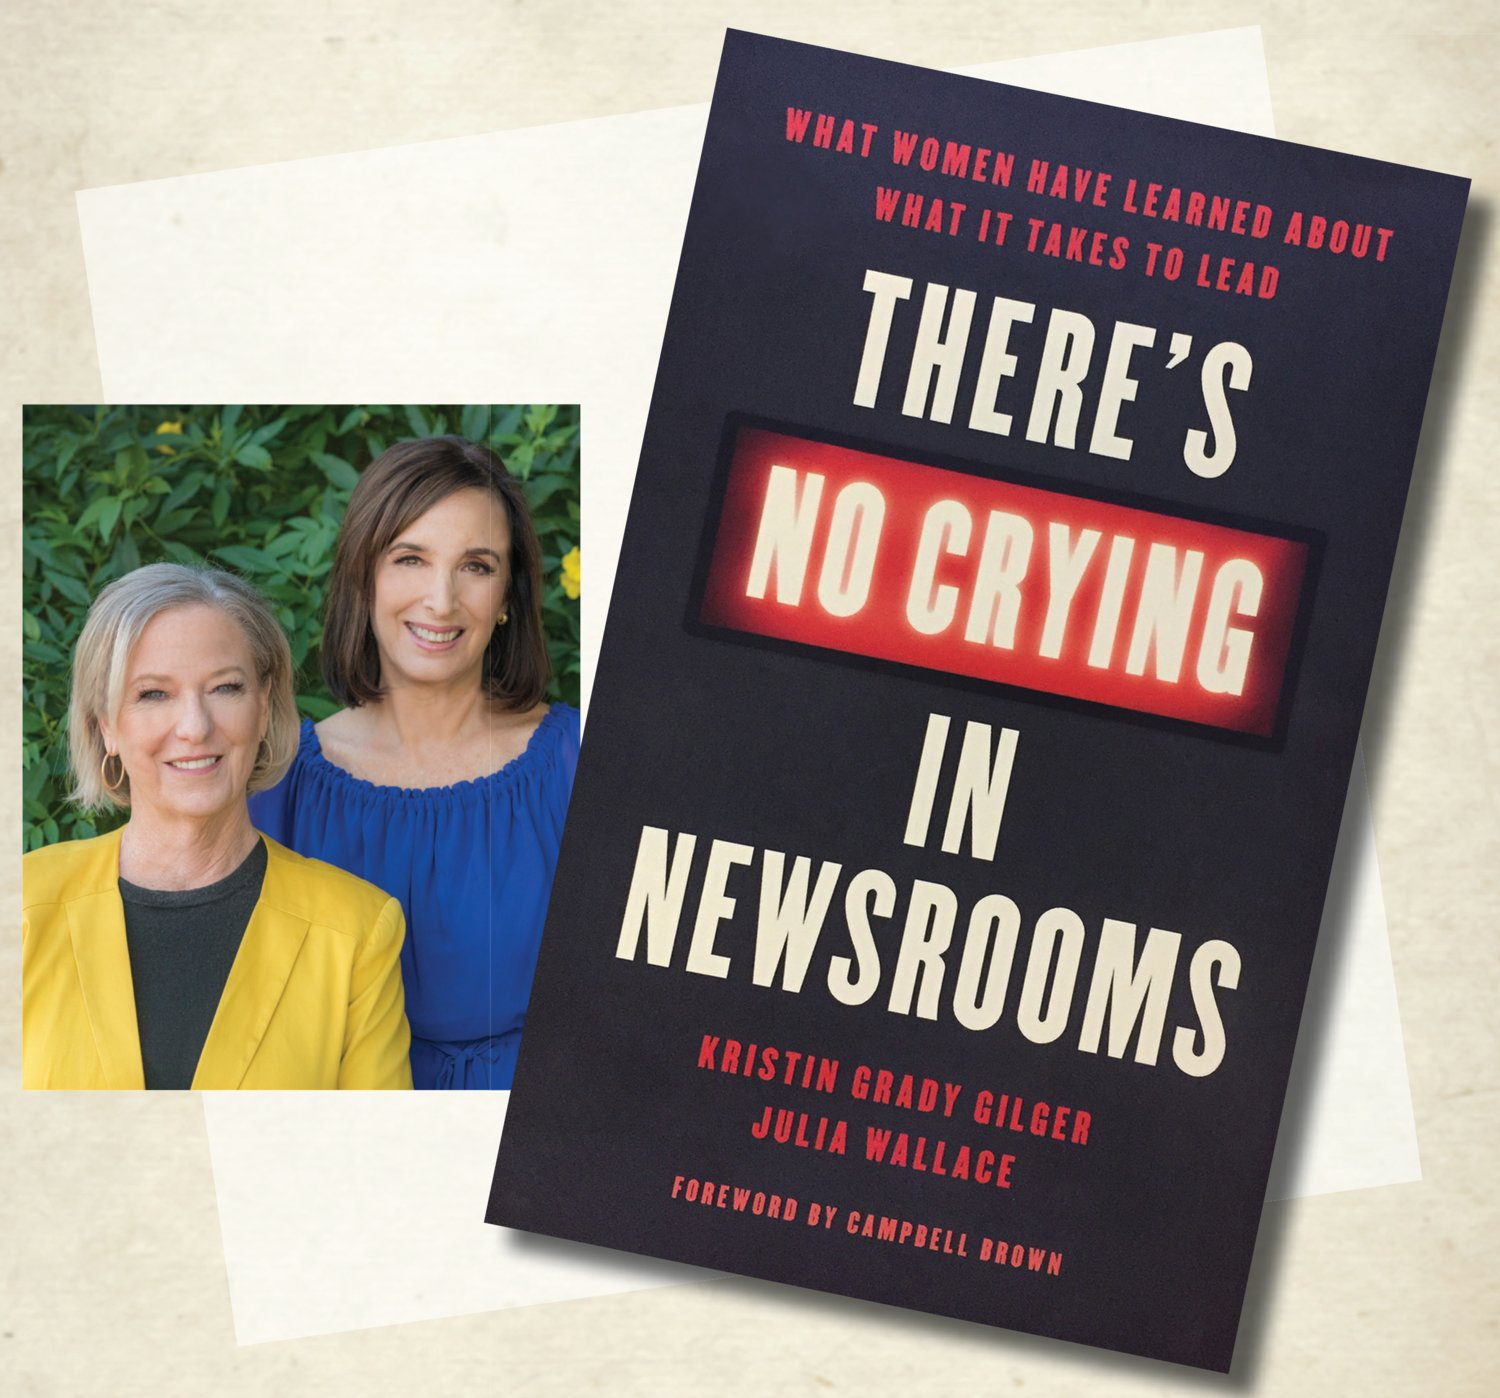 Kristin Gilger and Julia Wallace interviewed nearly 100 women about their newsroom experiences for their new book.